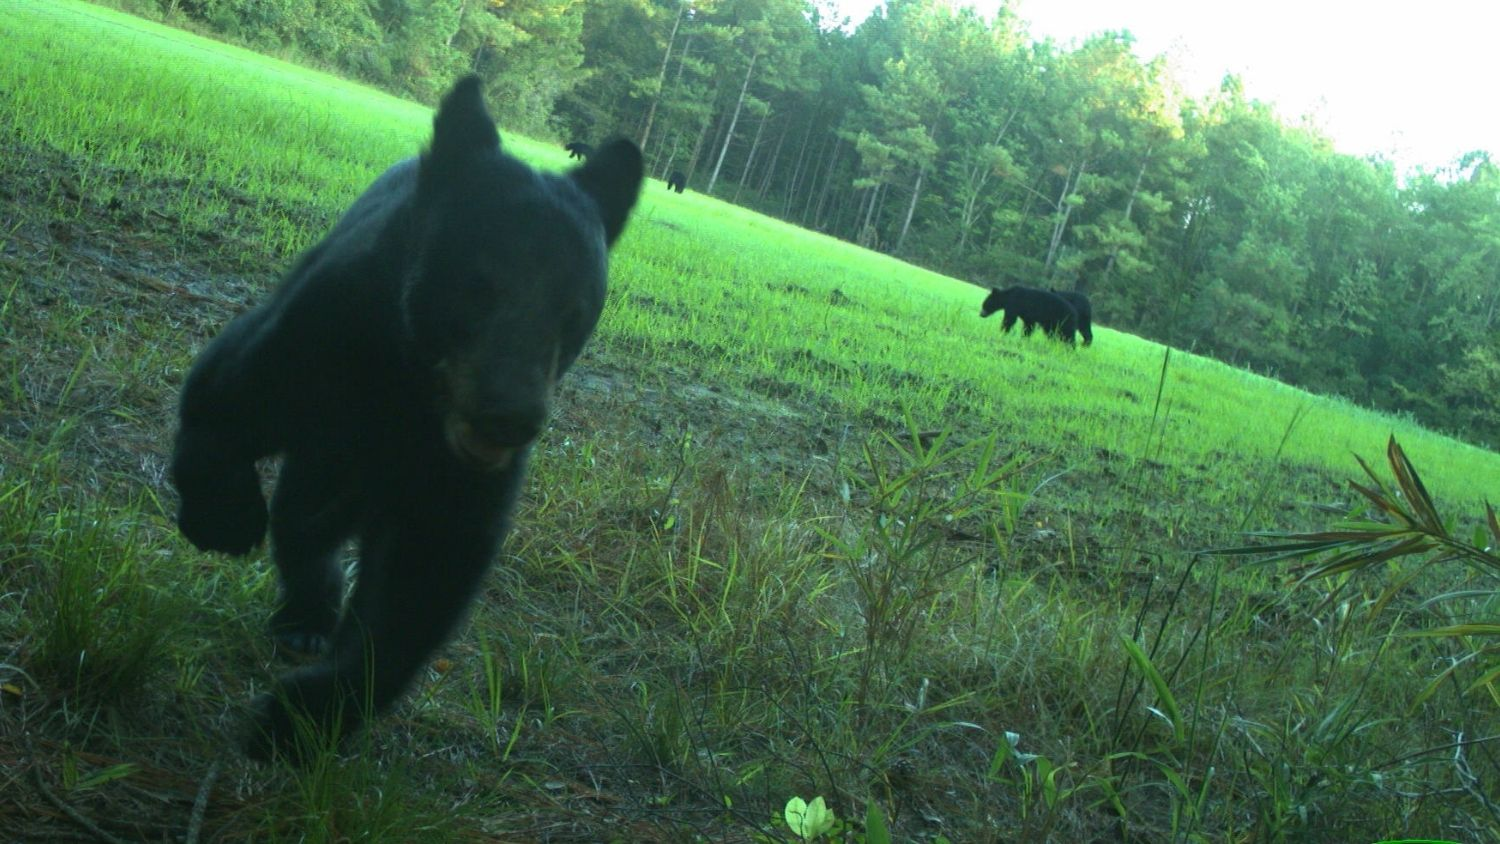 A citizen science study helped researchers capture wildlife images.